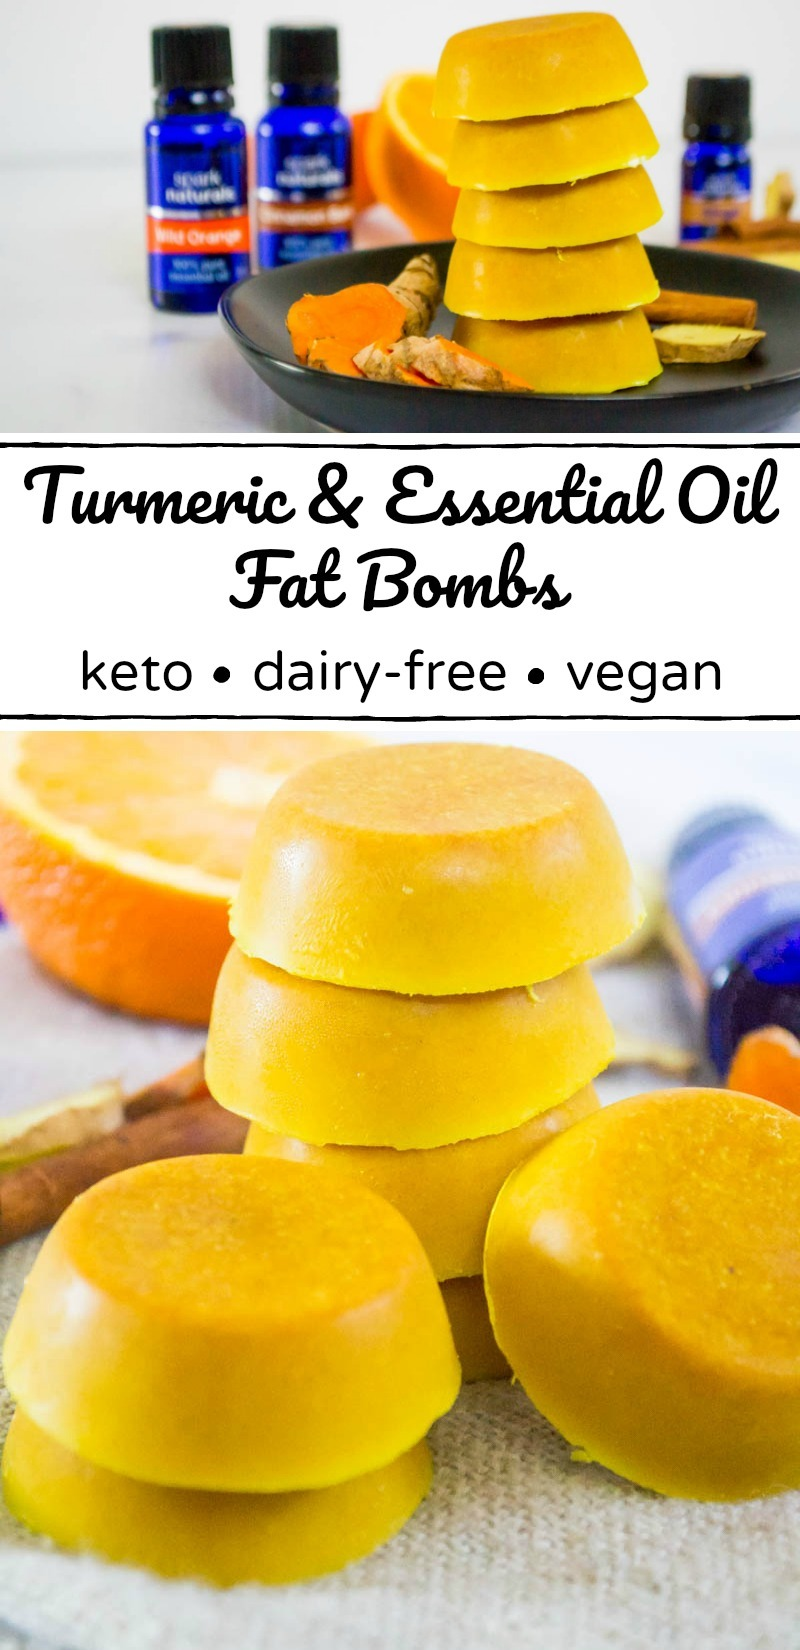 stack of yellow turmeric and essential oil fat bombs with text overlay